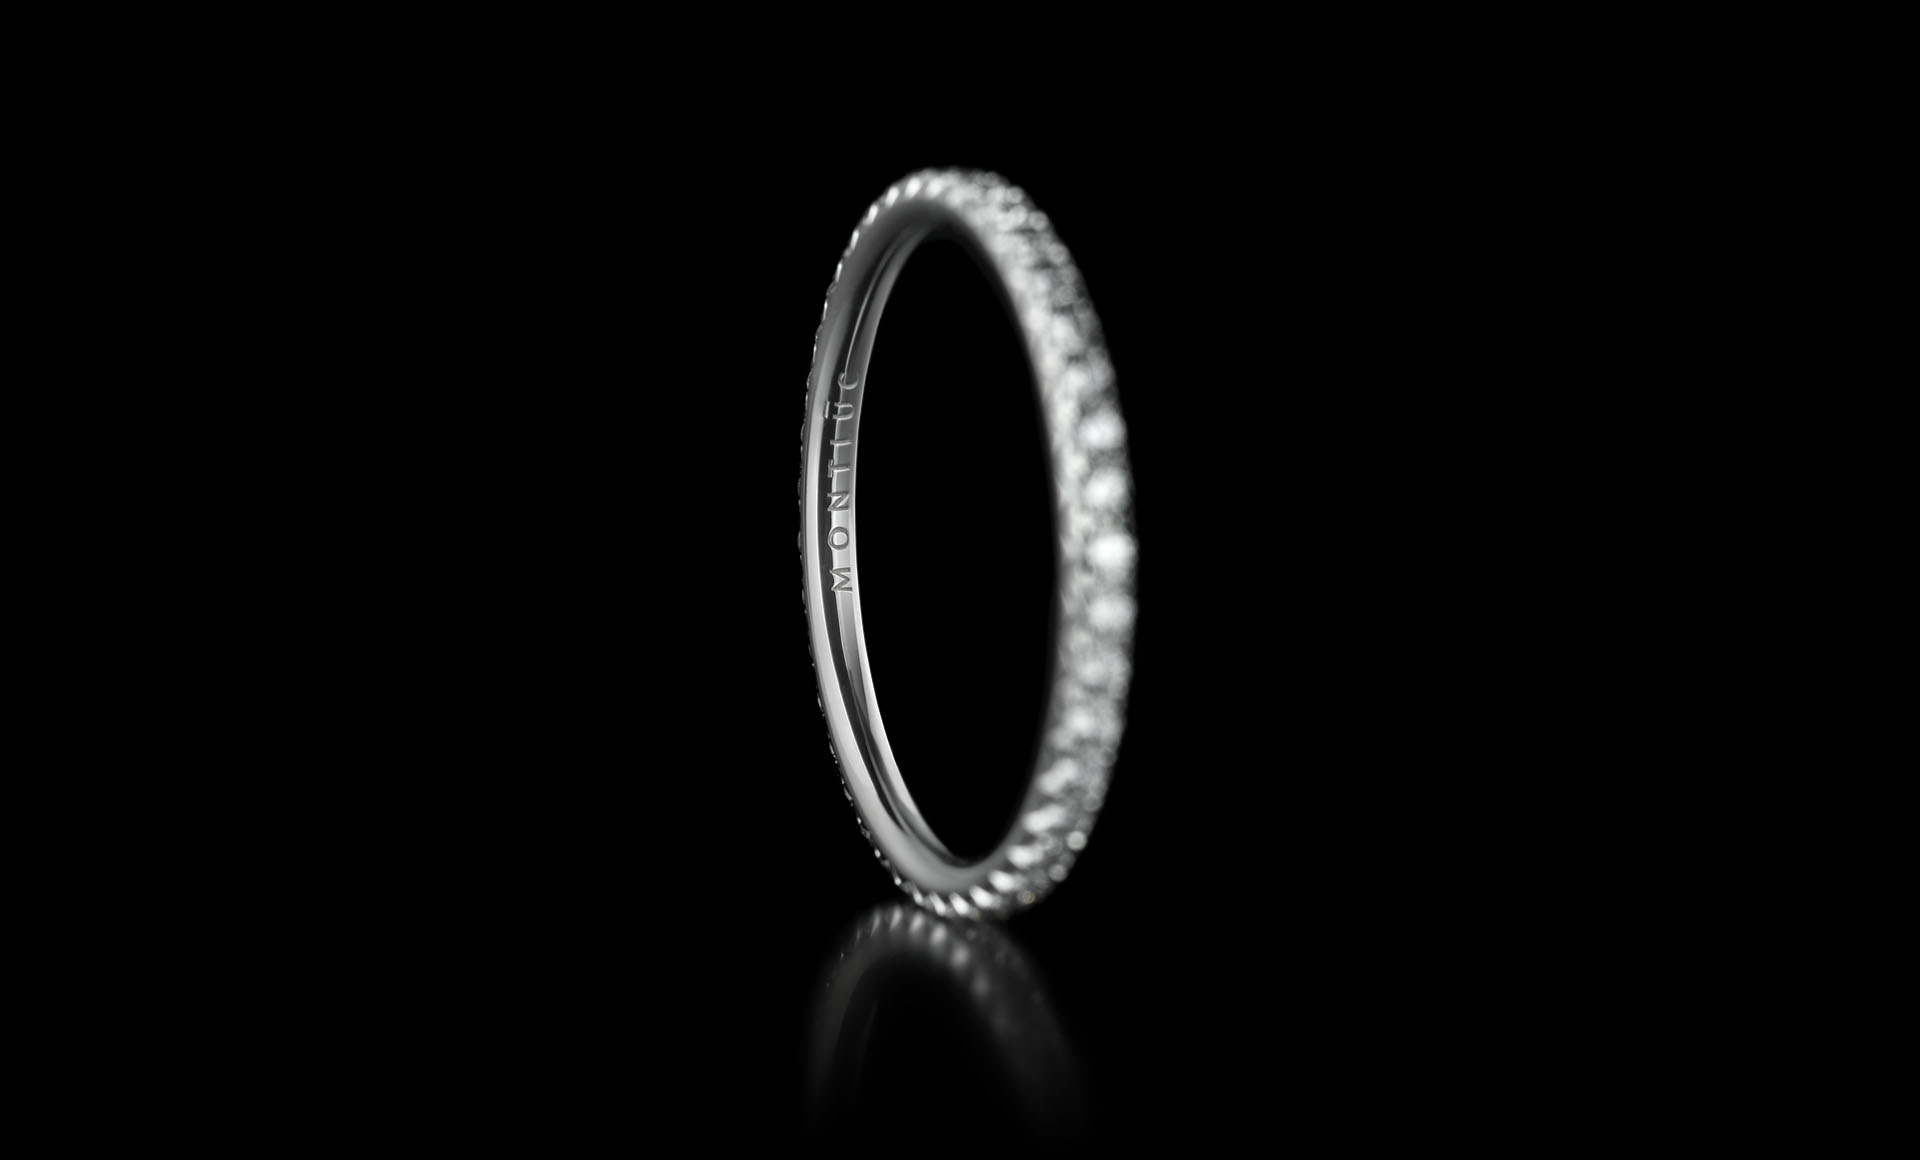 Montluc - Halo No.1 diamond ring, viewed from an angle, with engravement in focus